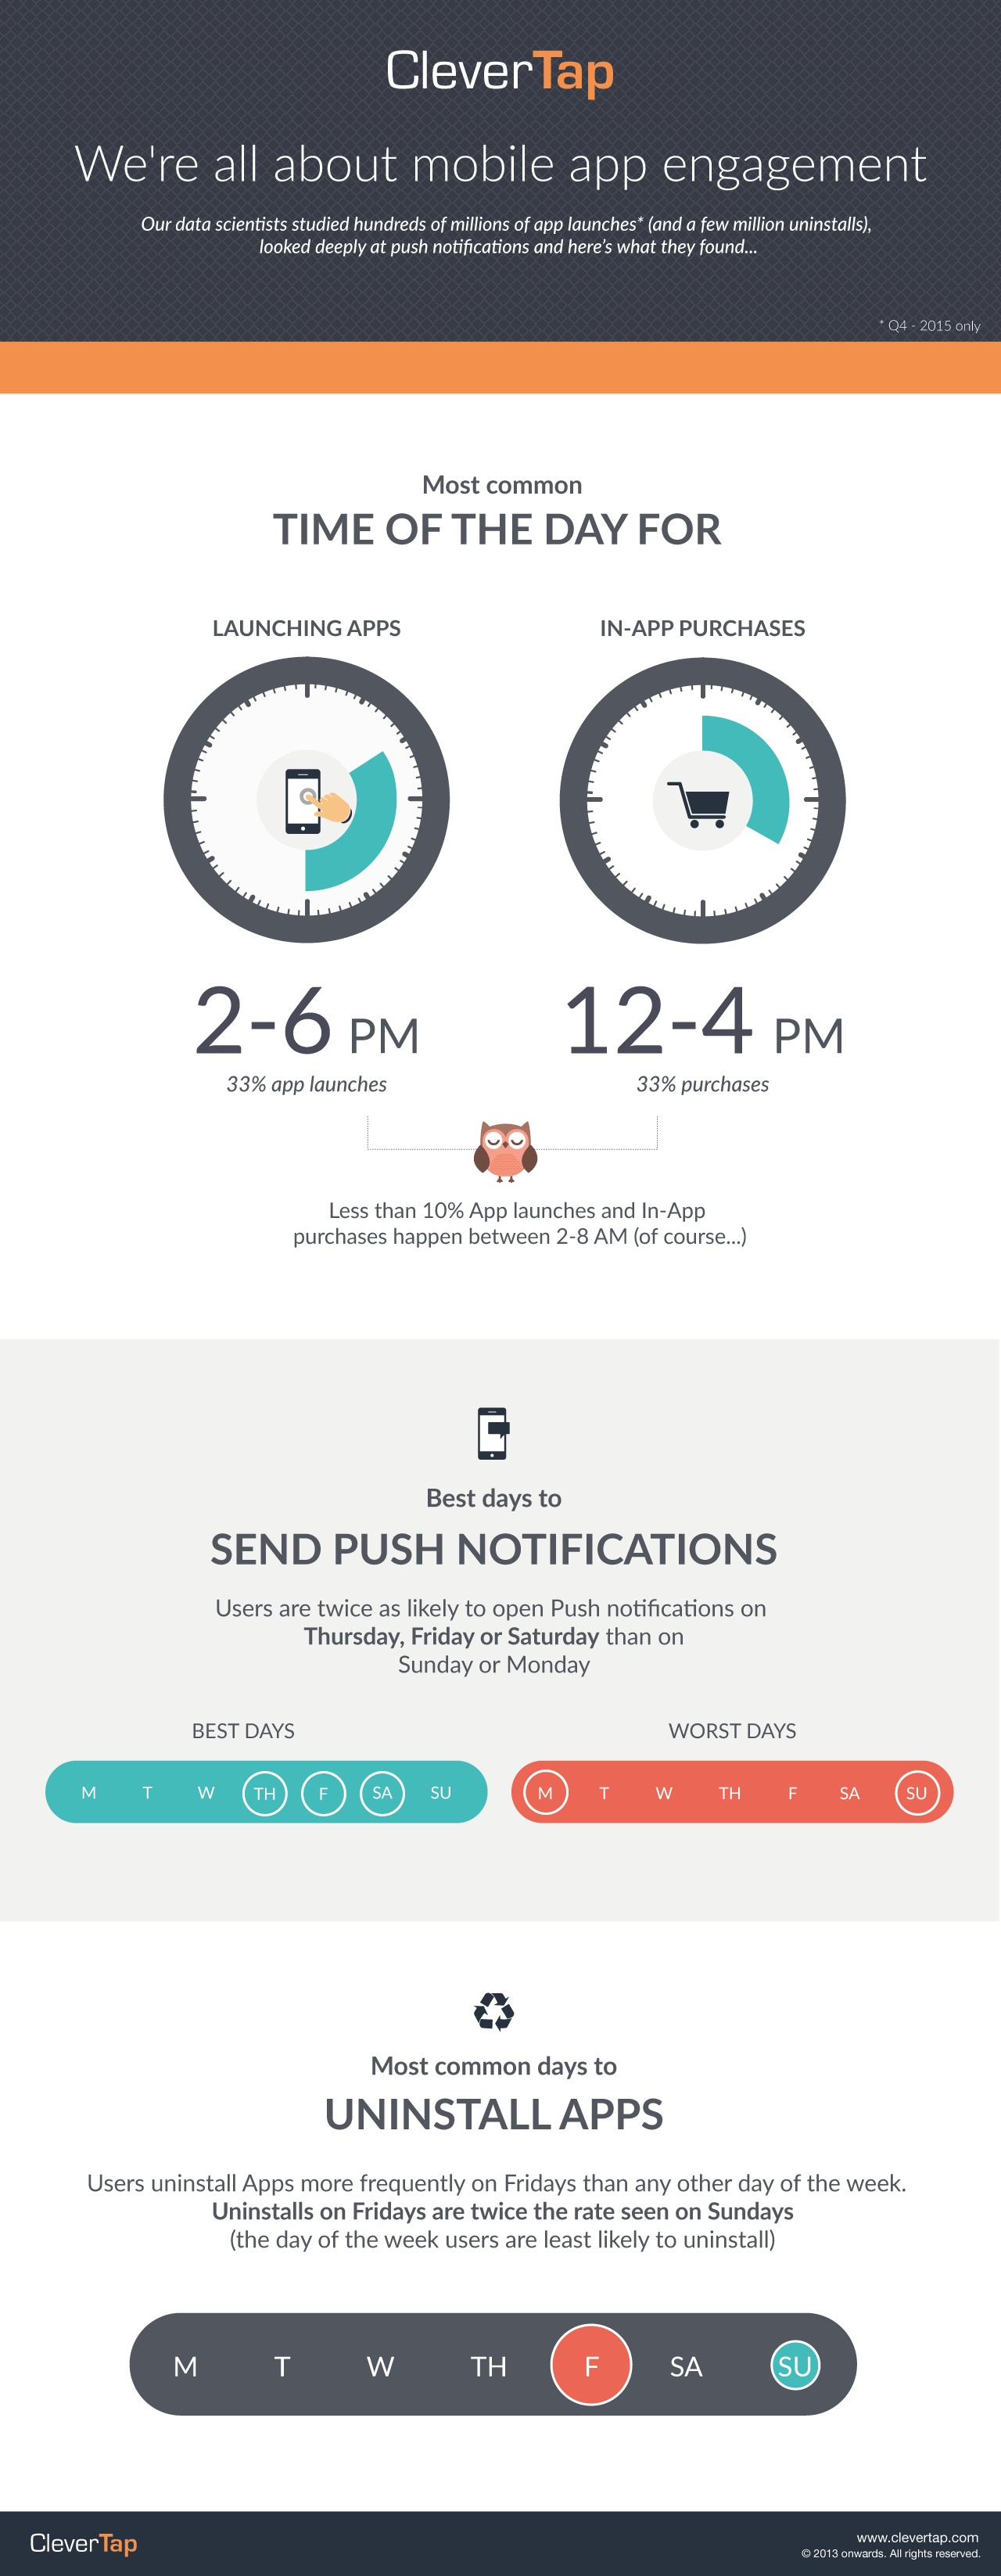 CLEVERTAP INFOGRAPHIC